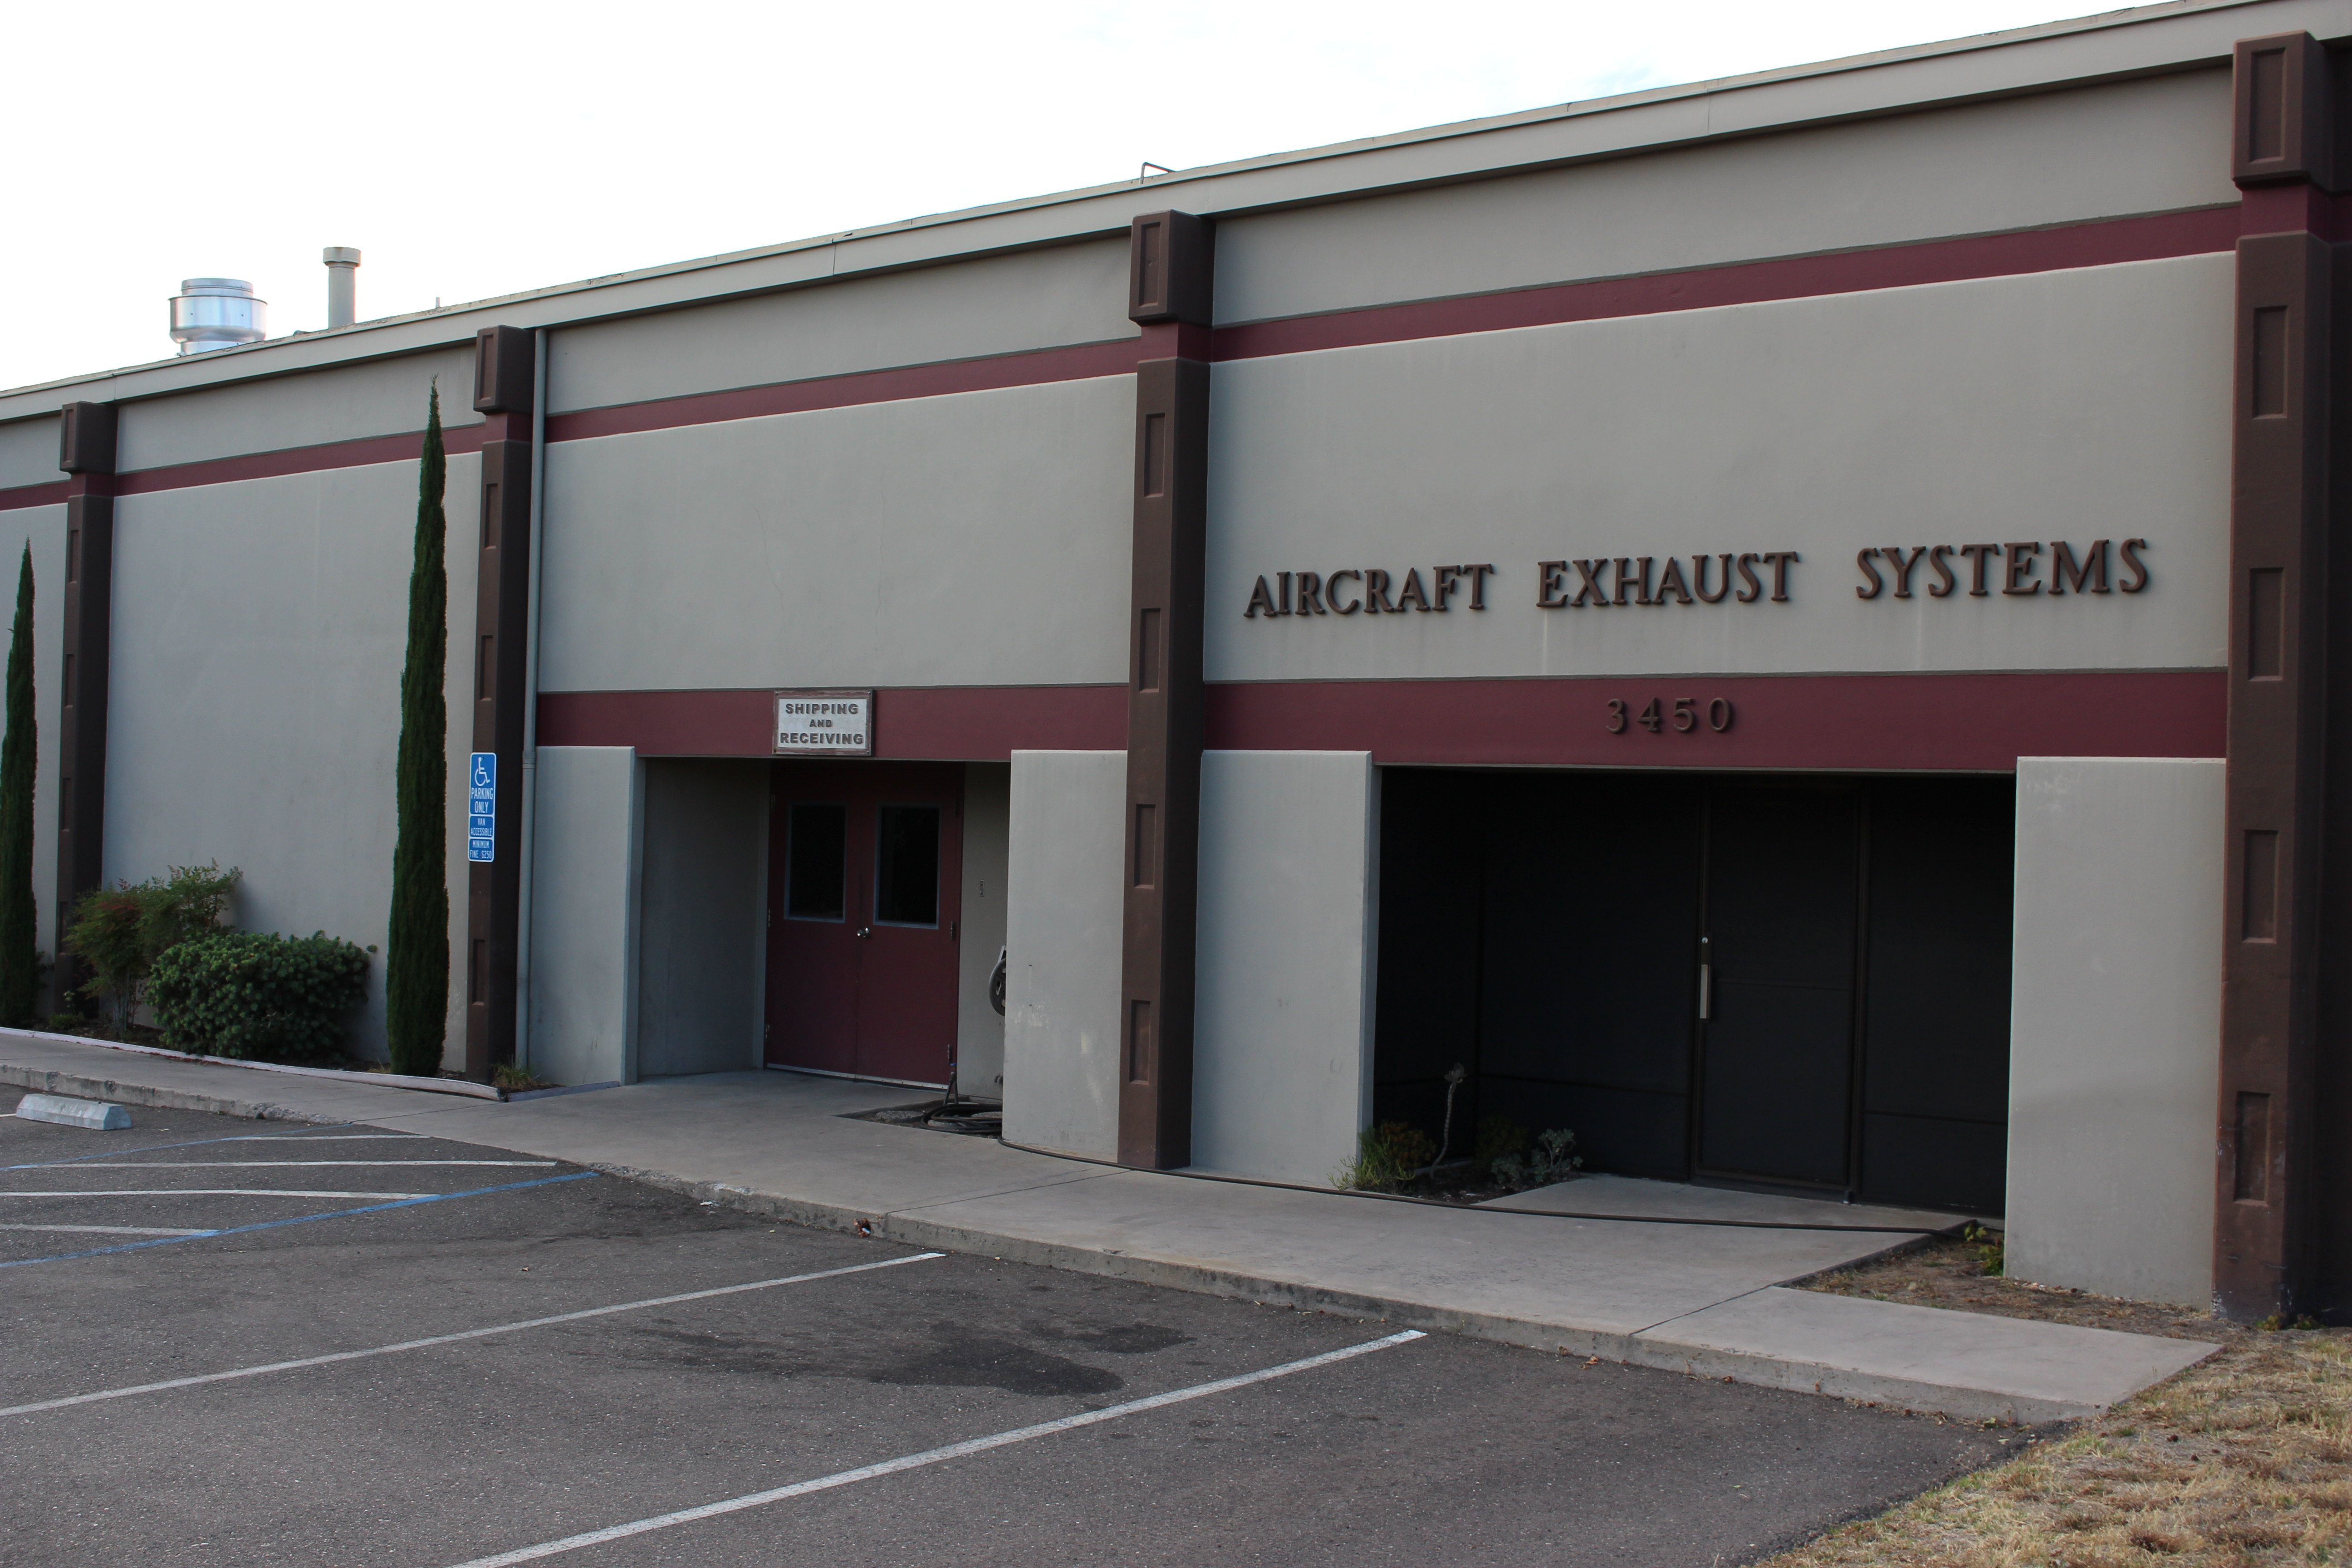 At Knisley Aircraft Exhaust System Store Front